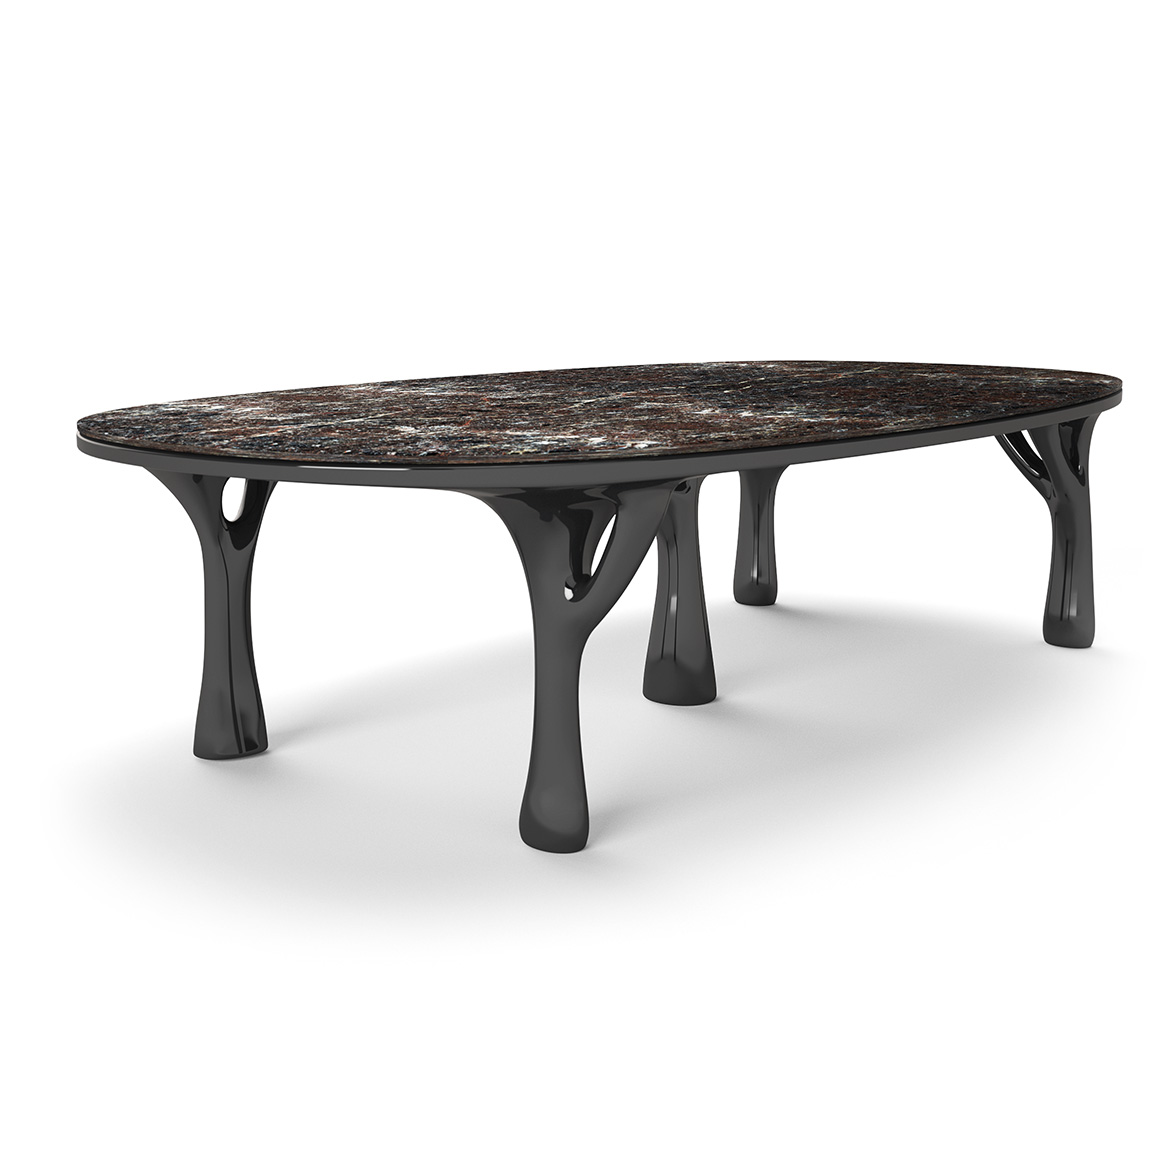 Black Baoba table